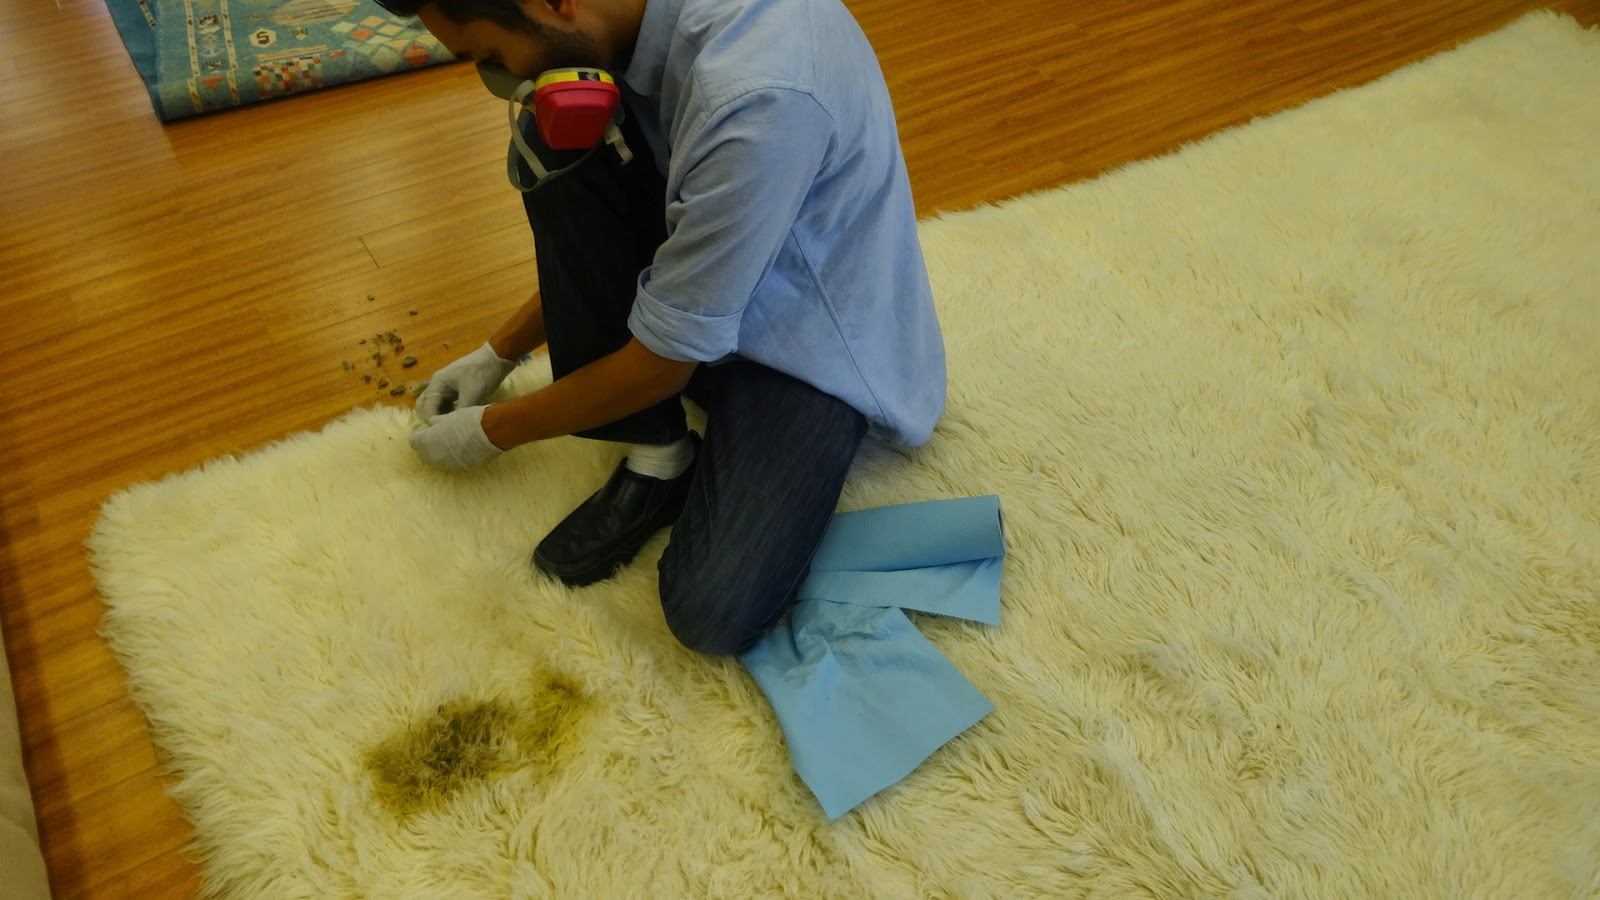 Rug Master: When You Have a Dirty Wool Flokati Rug, Let Us Take Care of the Cleaning For You